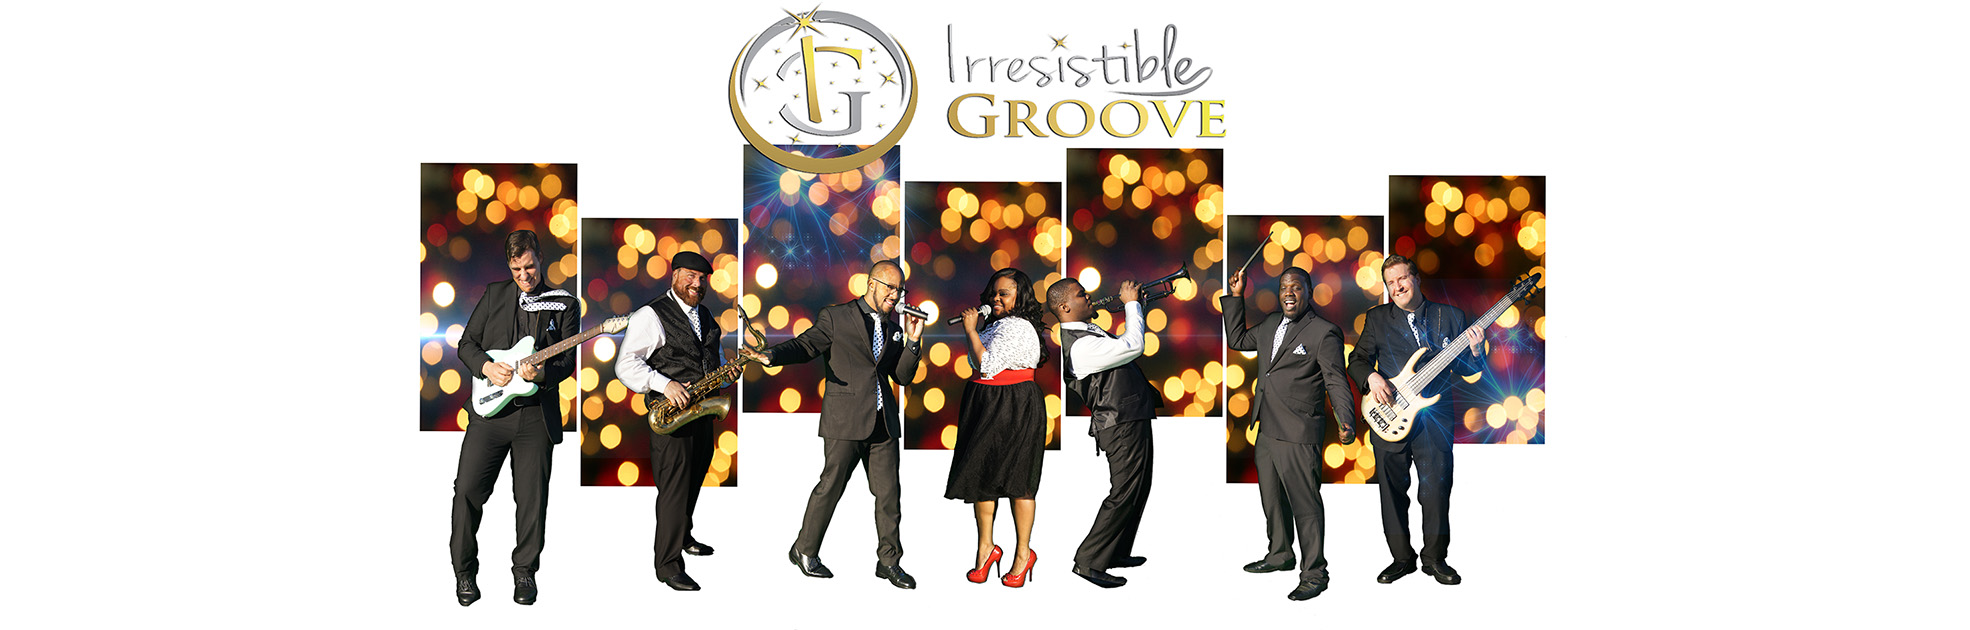 Image of IRRESISTIBLE GROOVE